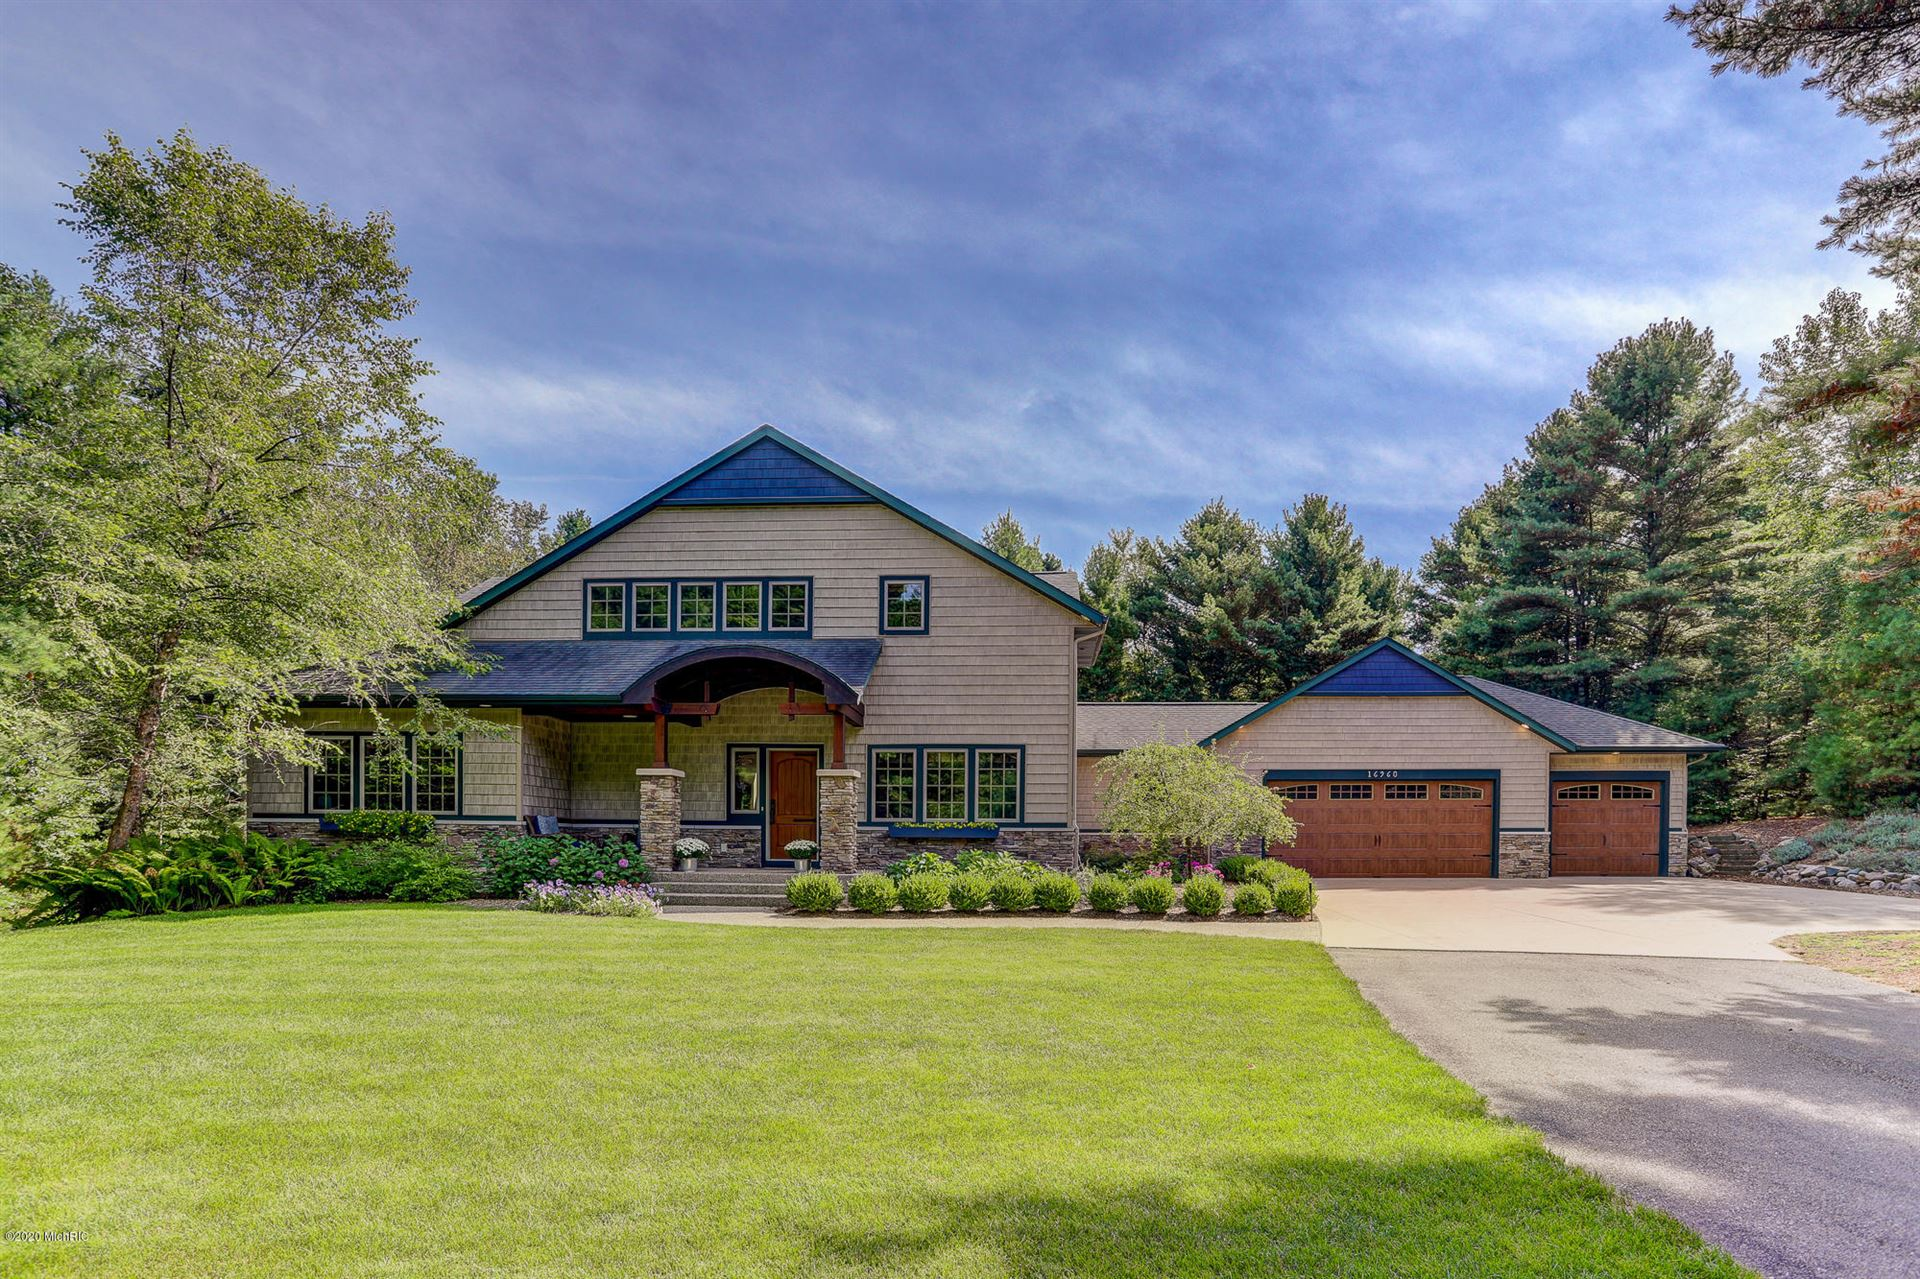 Photo of 16960 Eagle Lake Drive, Holland, MI 49424 (MLS # 20036582)